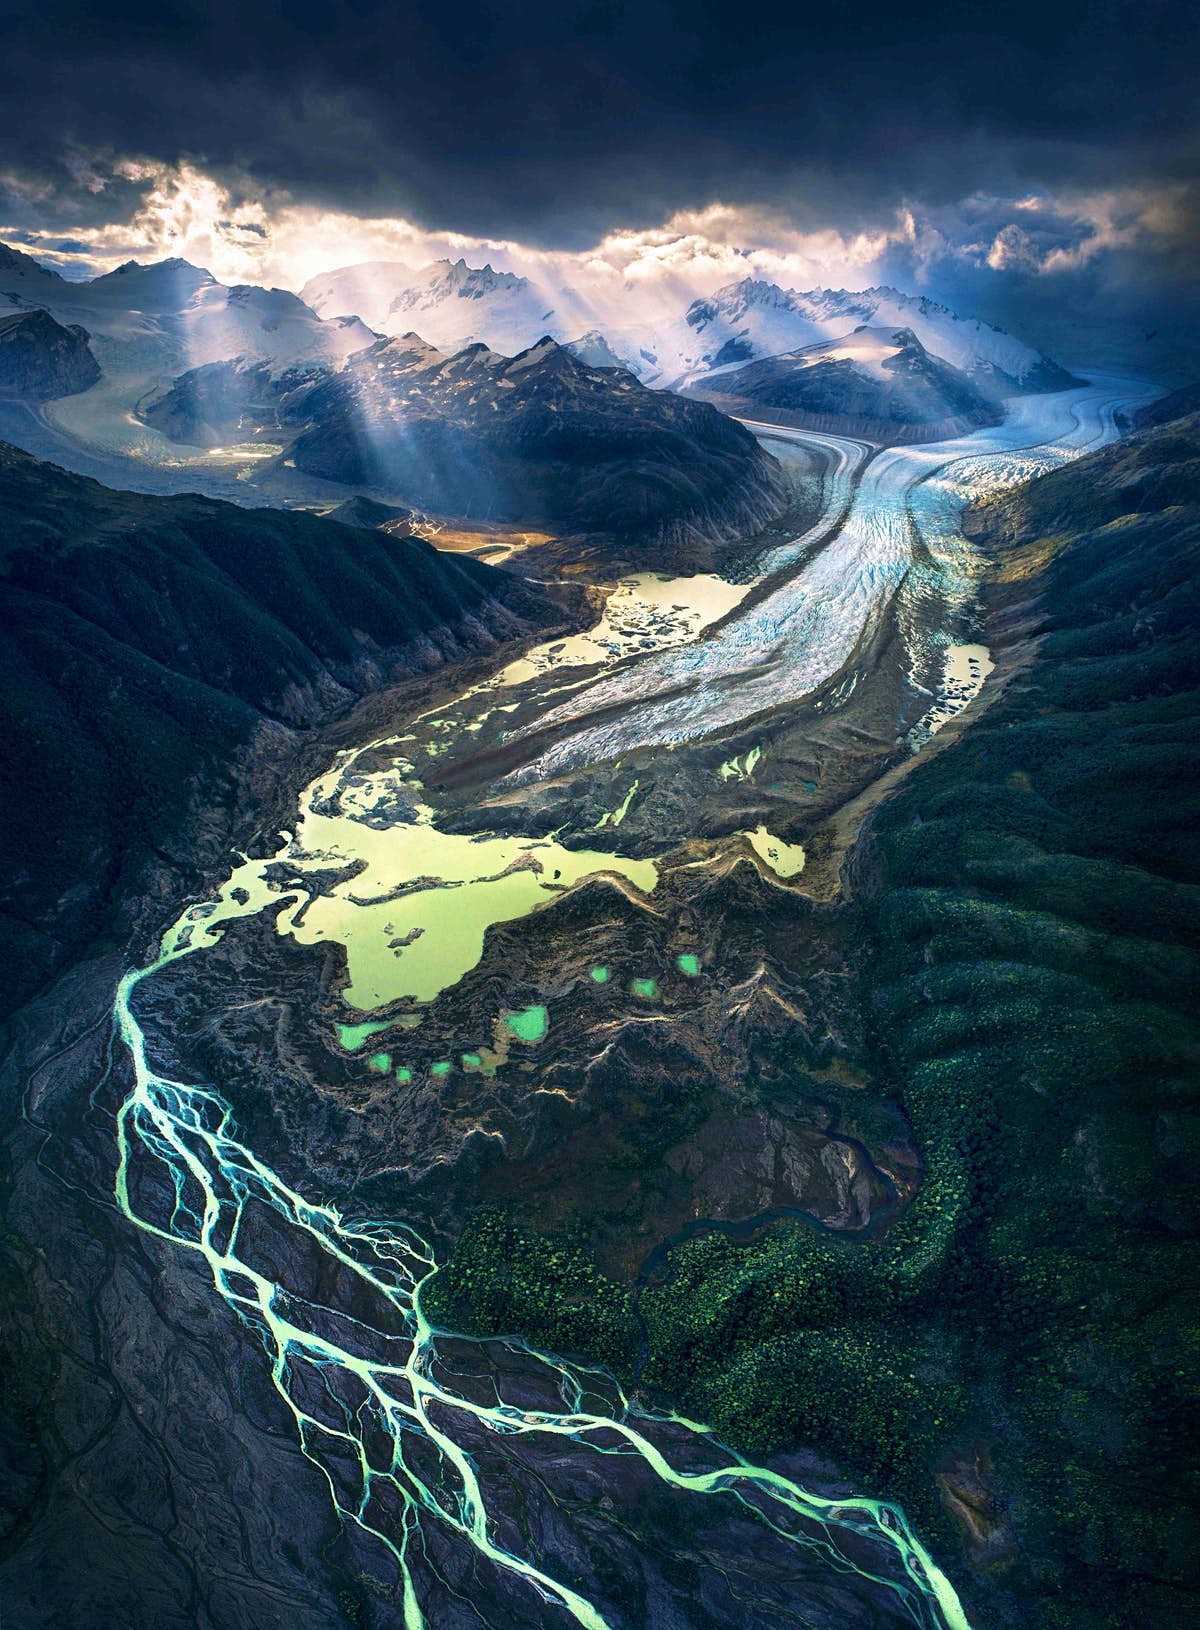 See the winning images in the International Landscape Photographer of the Year awards - Lonely Planet